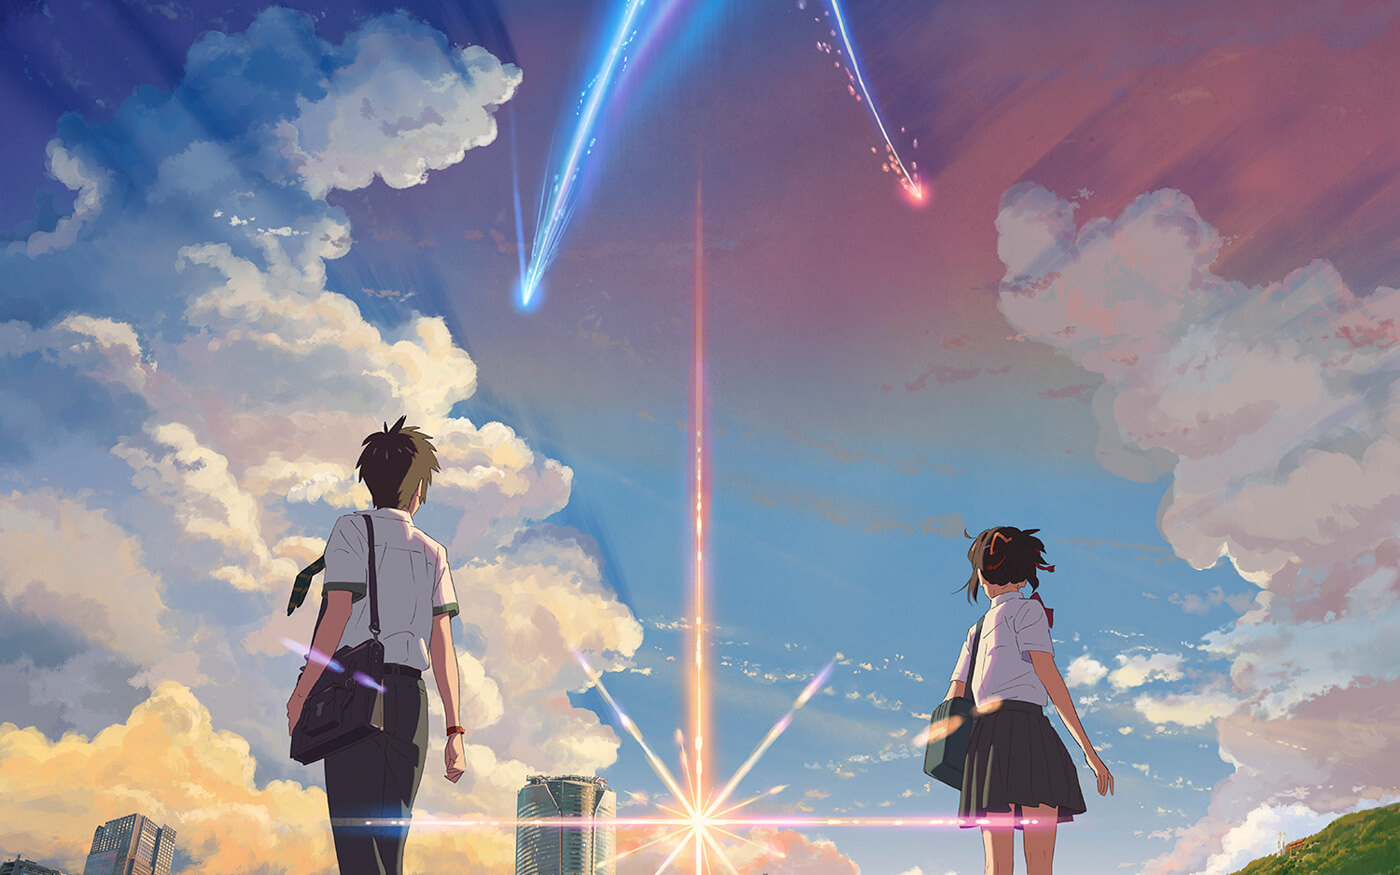 Your name director announces new anime film for 2019